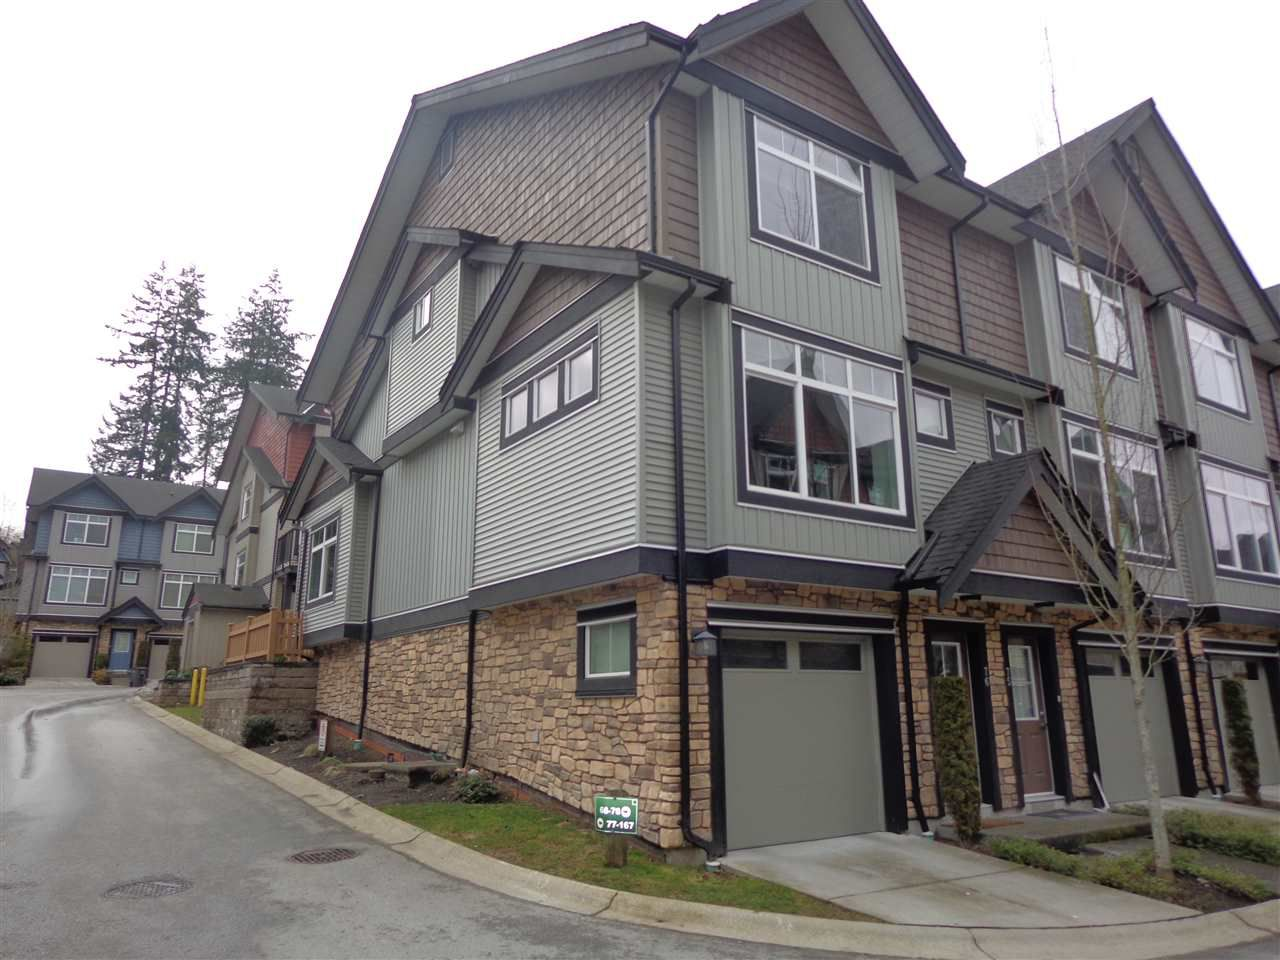 Main Photo: 76 6299 144 STREET in Surrey: Sullivan Station Townhouse for sale : MLS®# R2141156